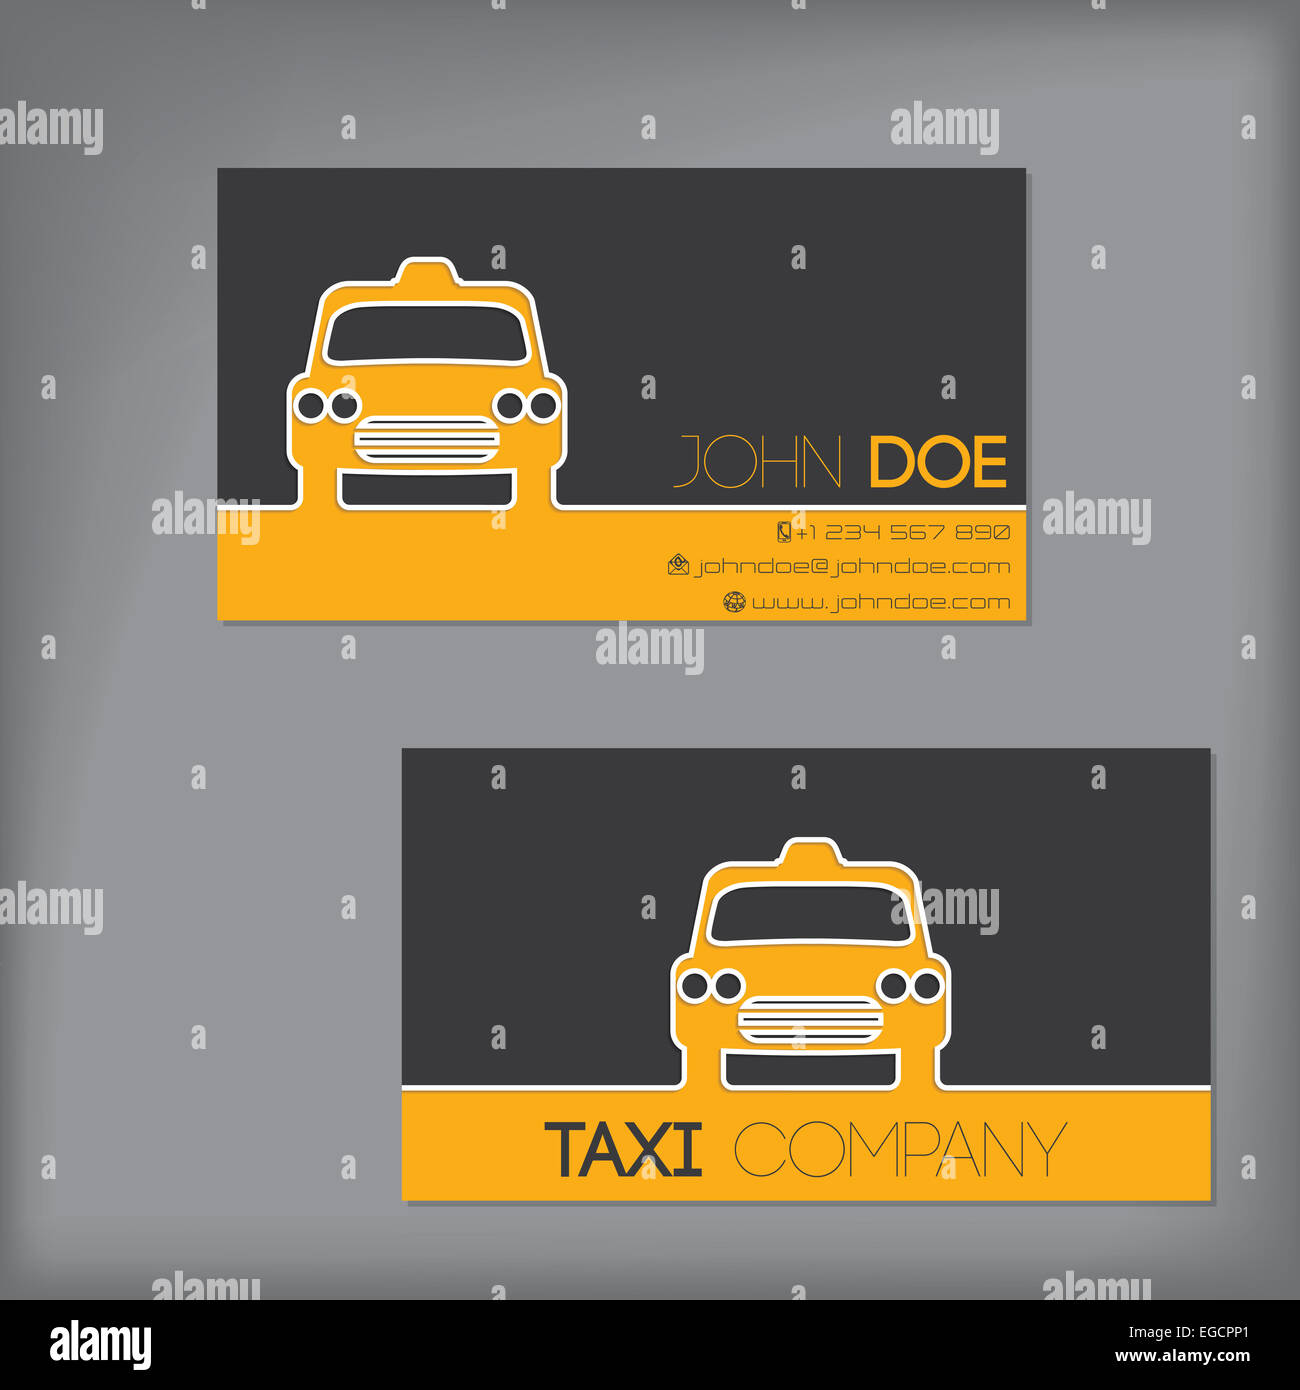 Taxi business card design with cab silhouette Stock Photo: 78957257 ...